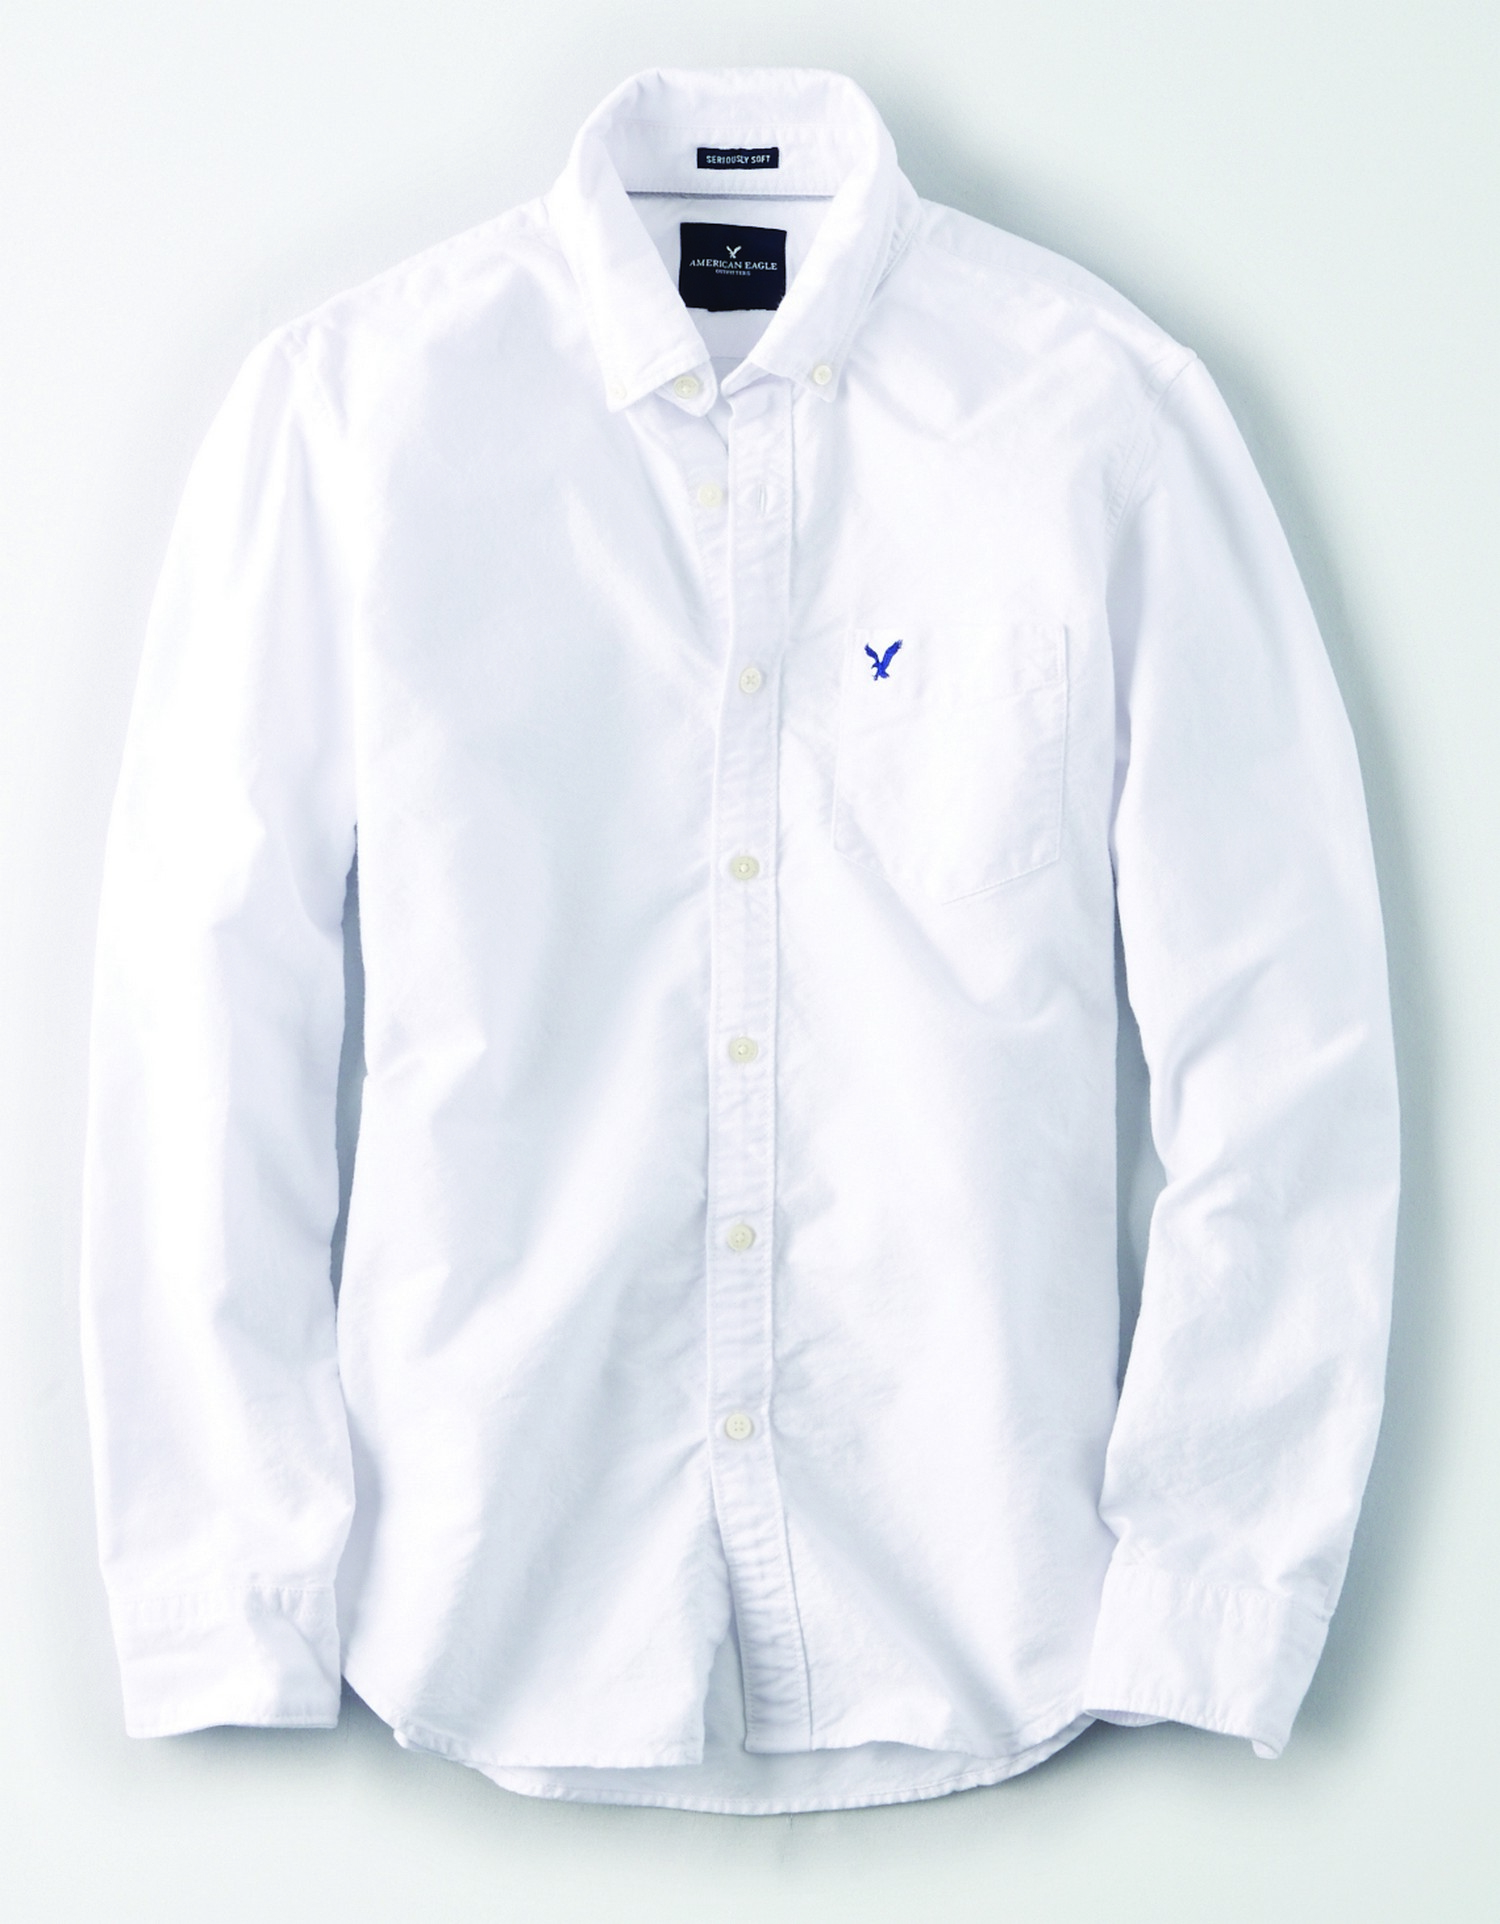 AE - INTL - Apparel - M - YD SOLID OXFORD - White Button down - left chest pocket - button collar - solid color - white buttons BG